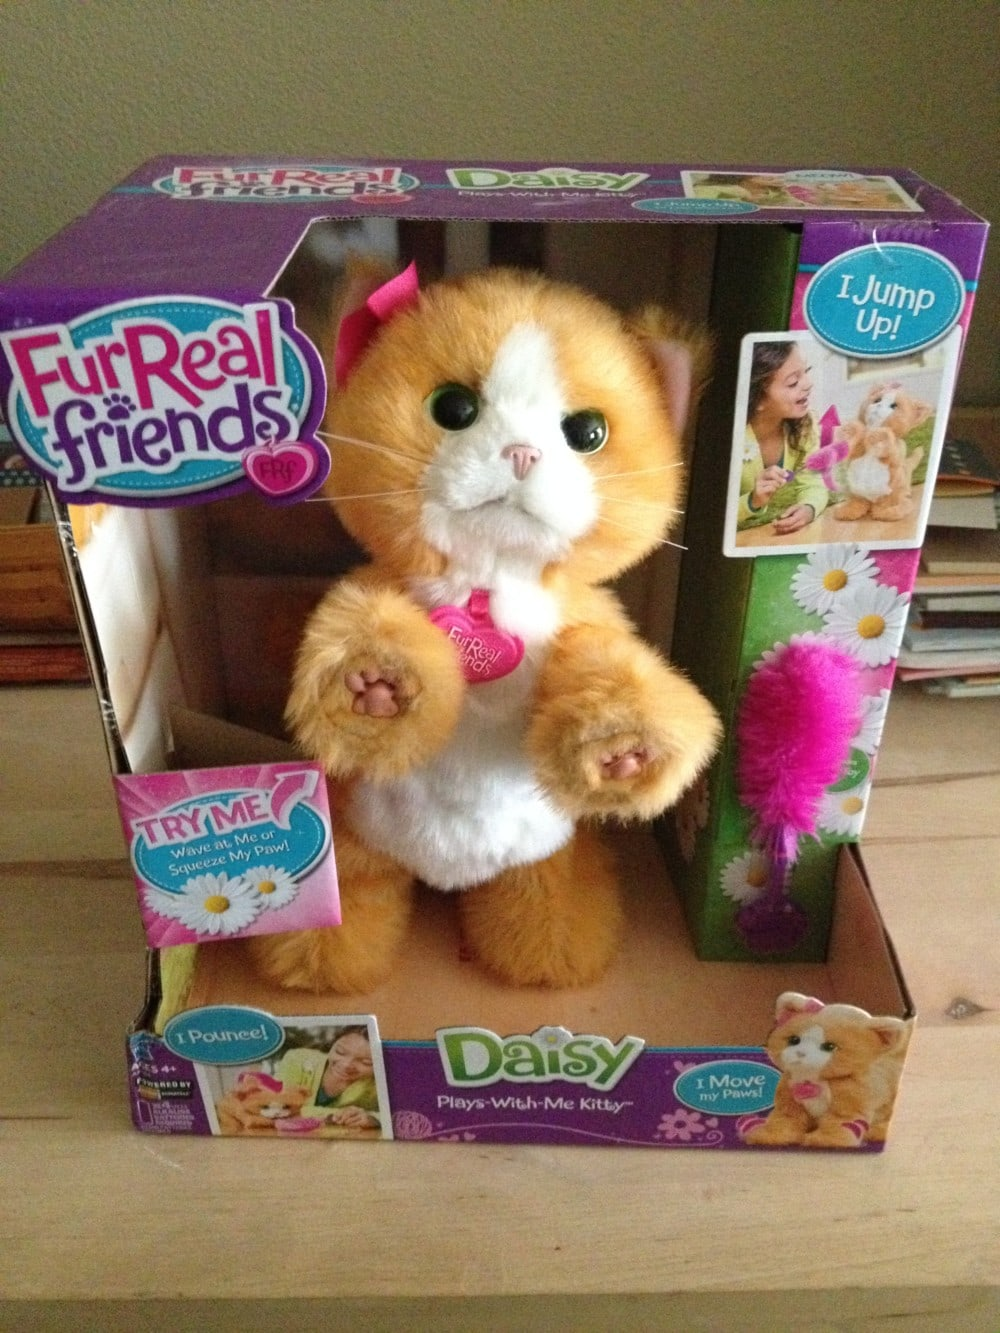 FurReal Friends Daisy Plays-With-Me Kitty Toy {Review} #HH2013